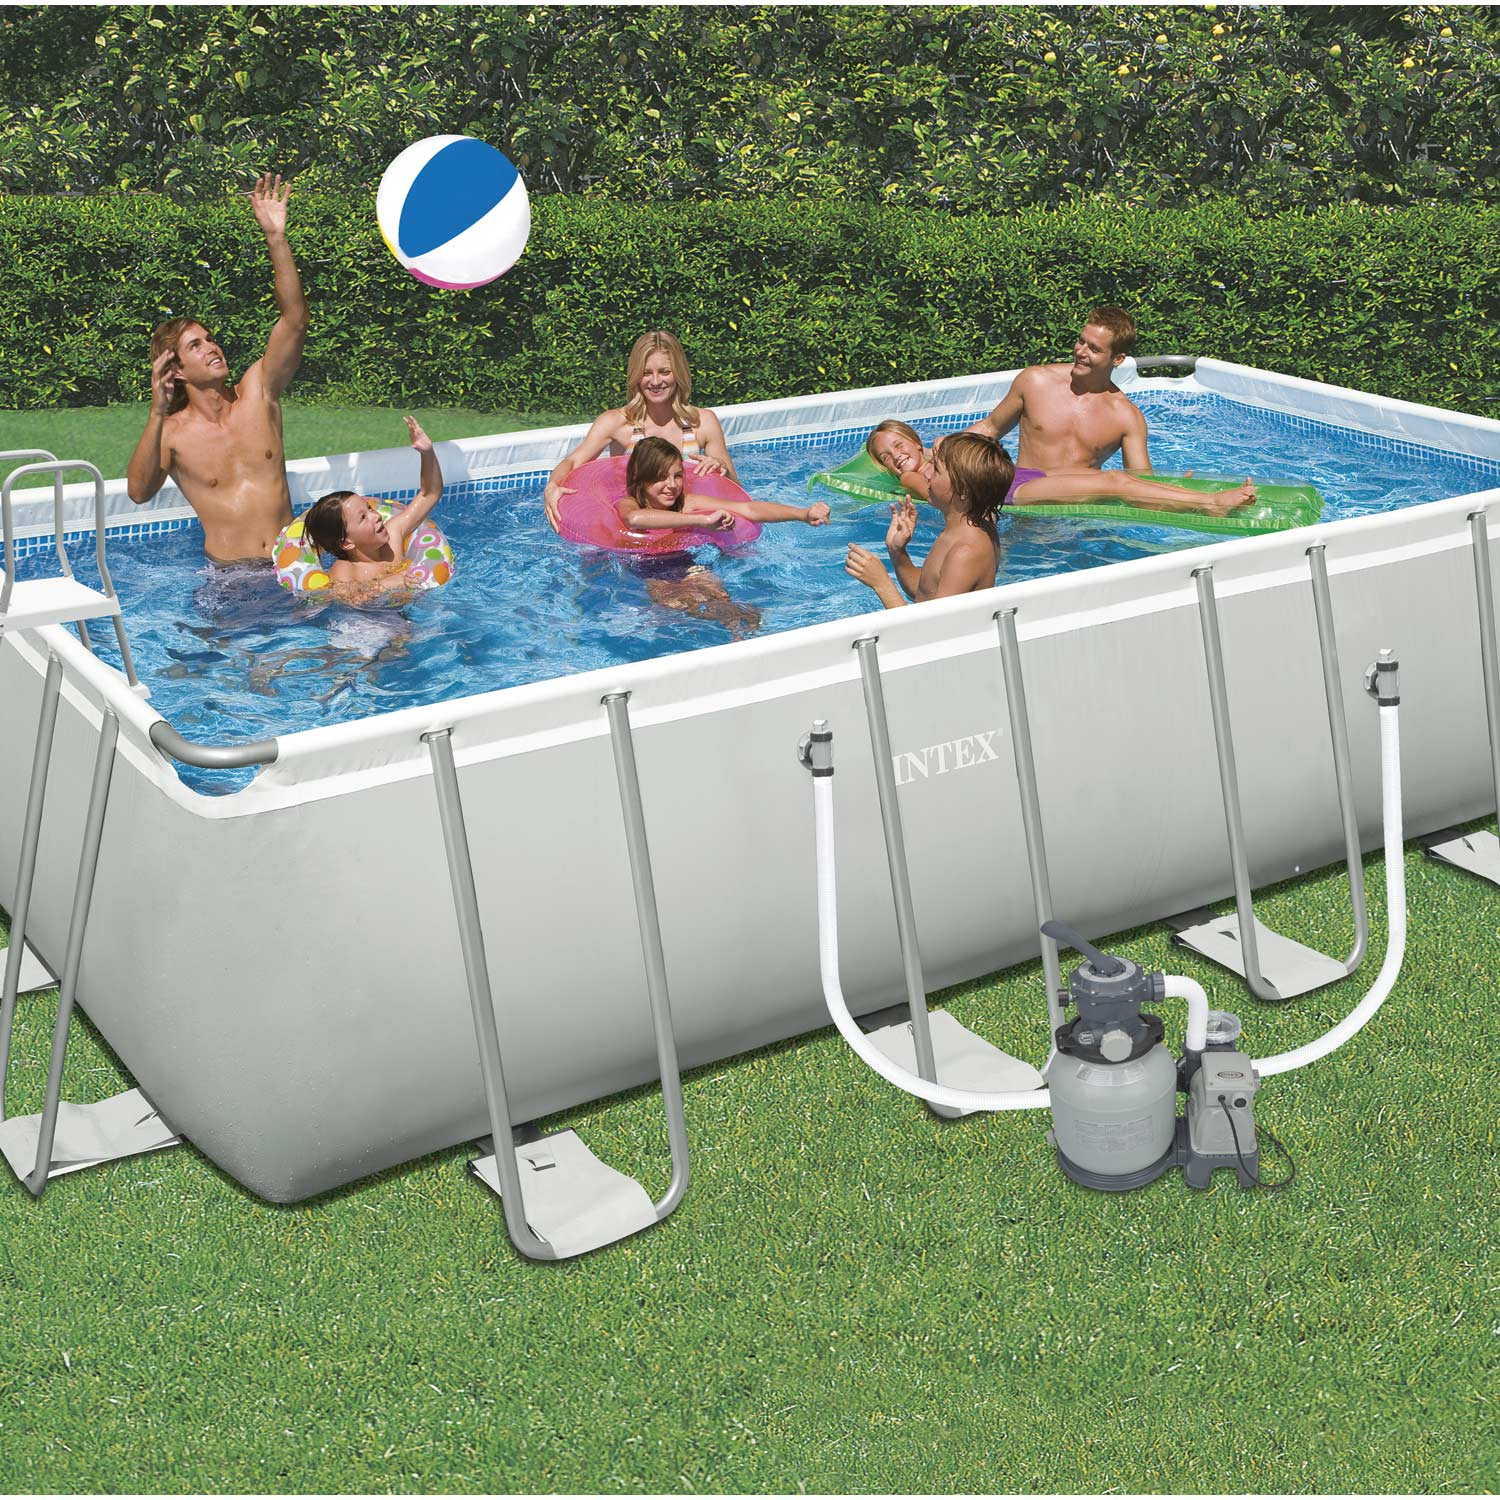 Piscine hors sol autoportante tubulaire ultra silver intex for Piscine coque hors sol